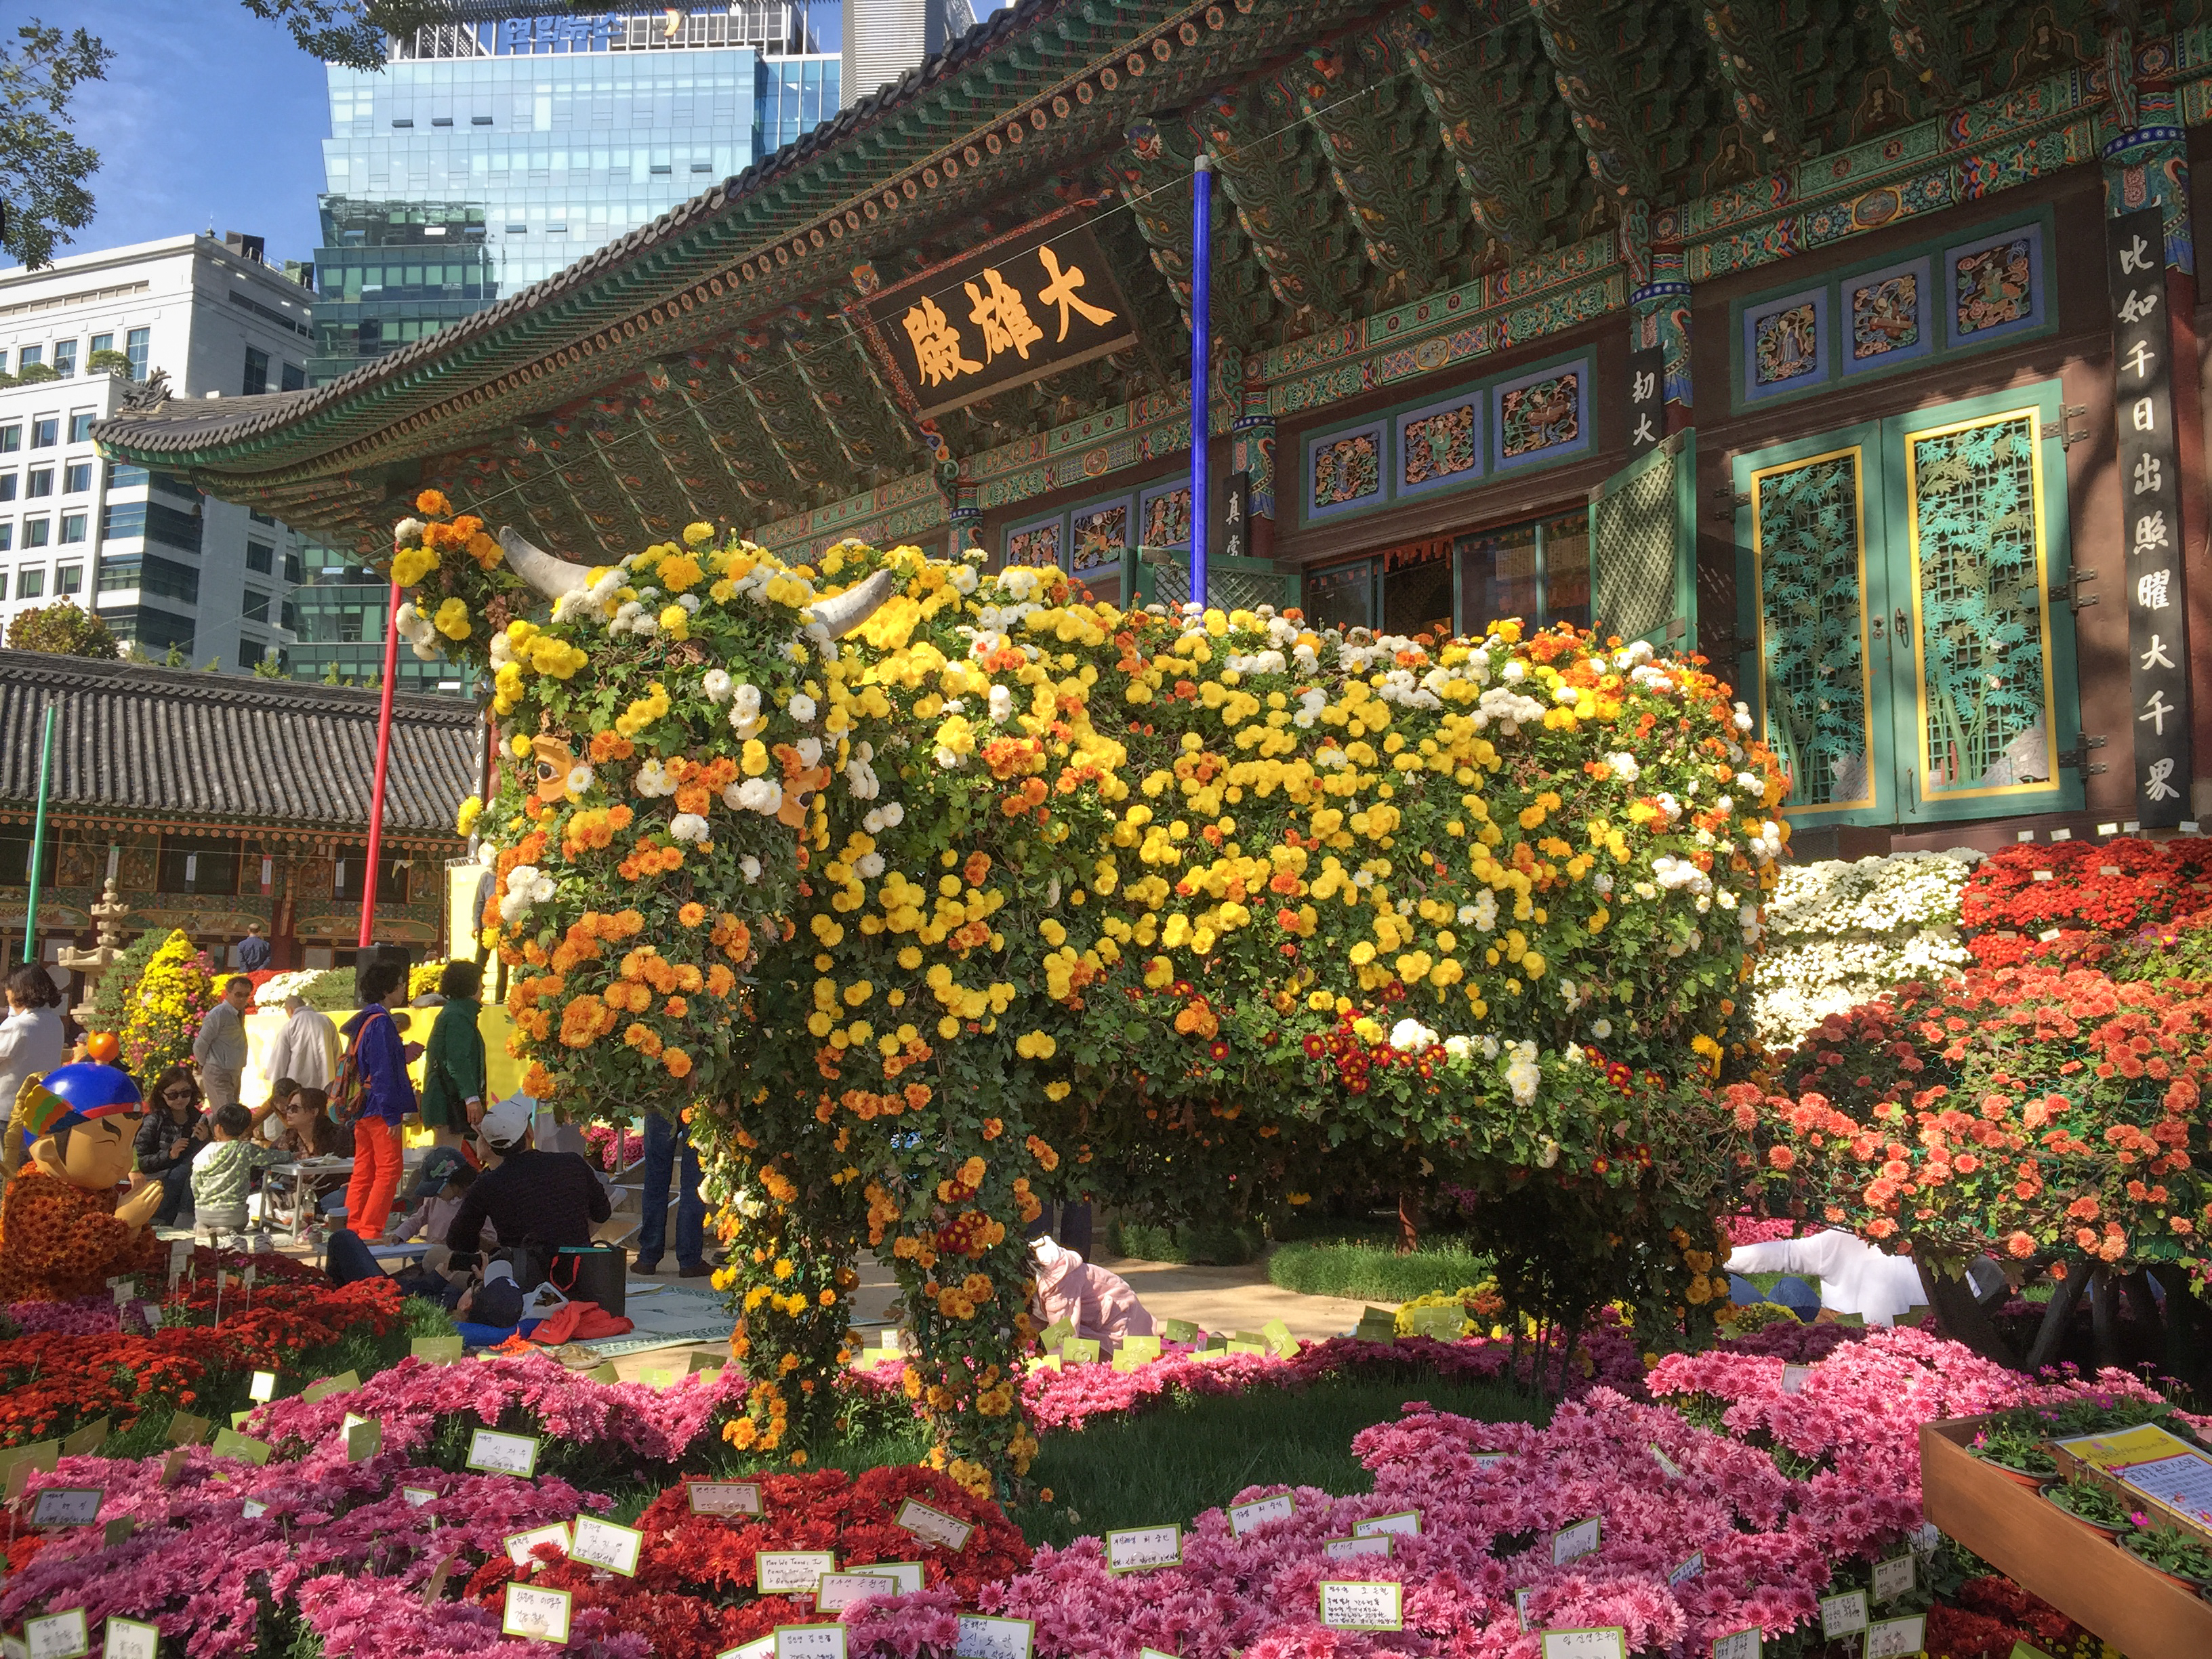 The flower cow